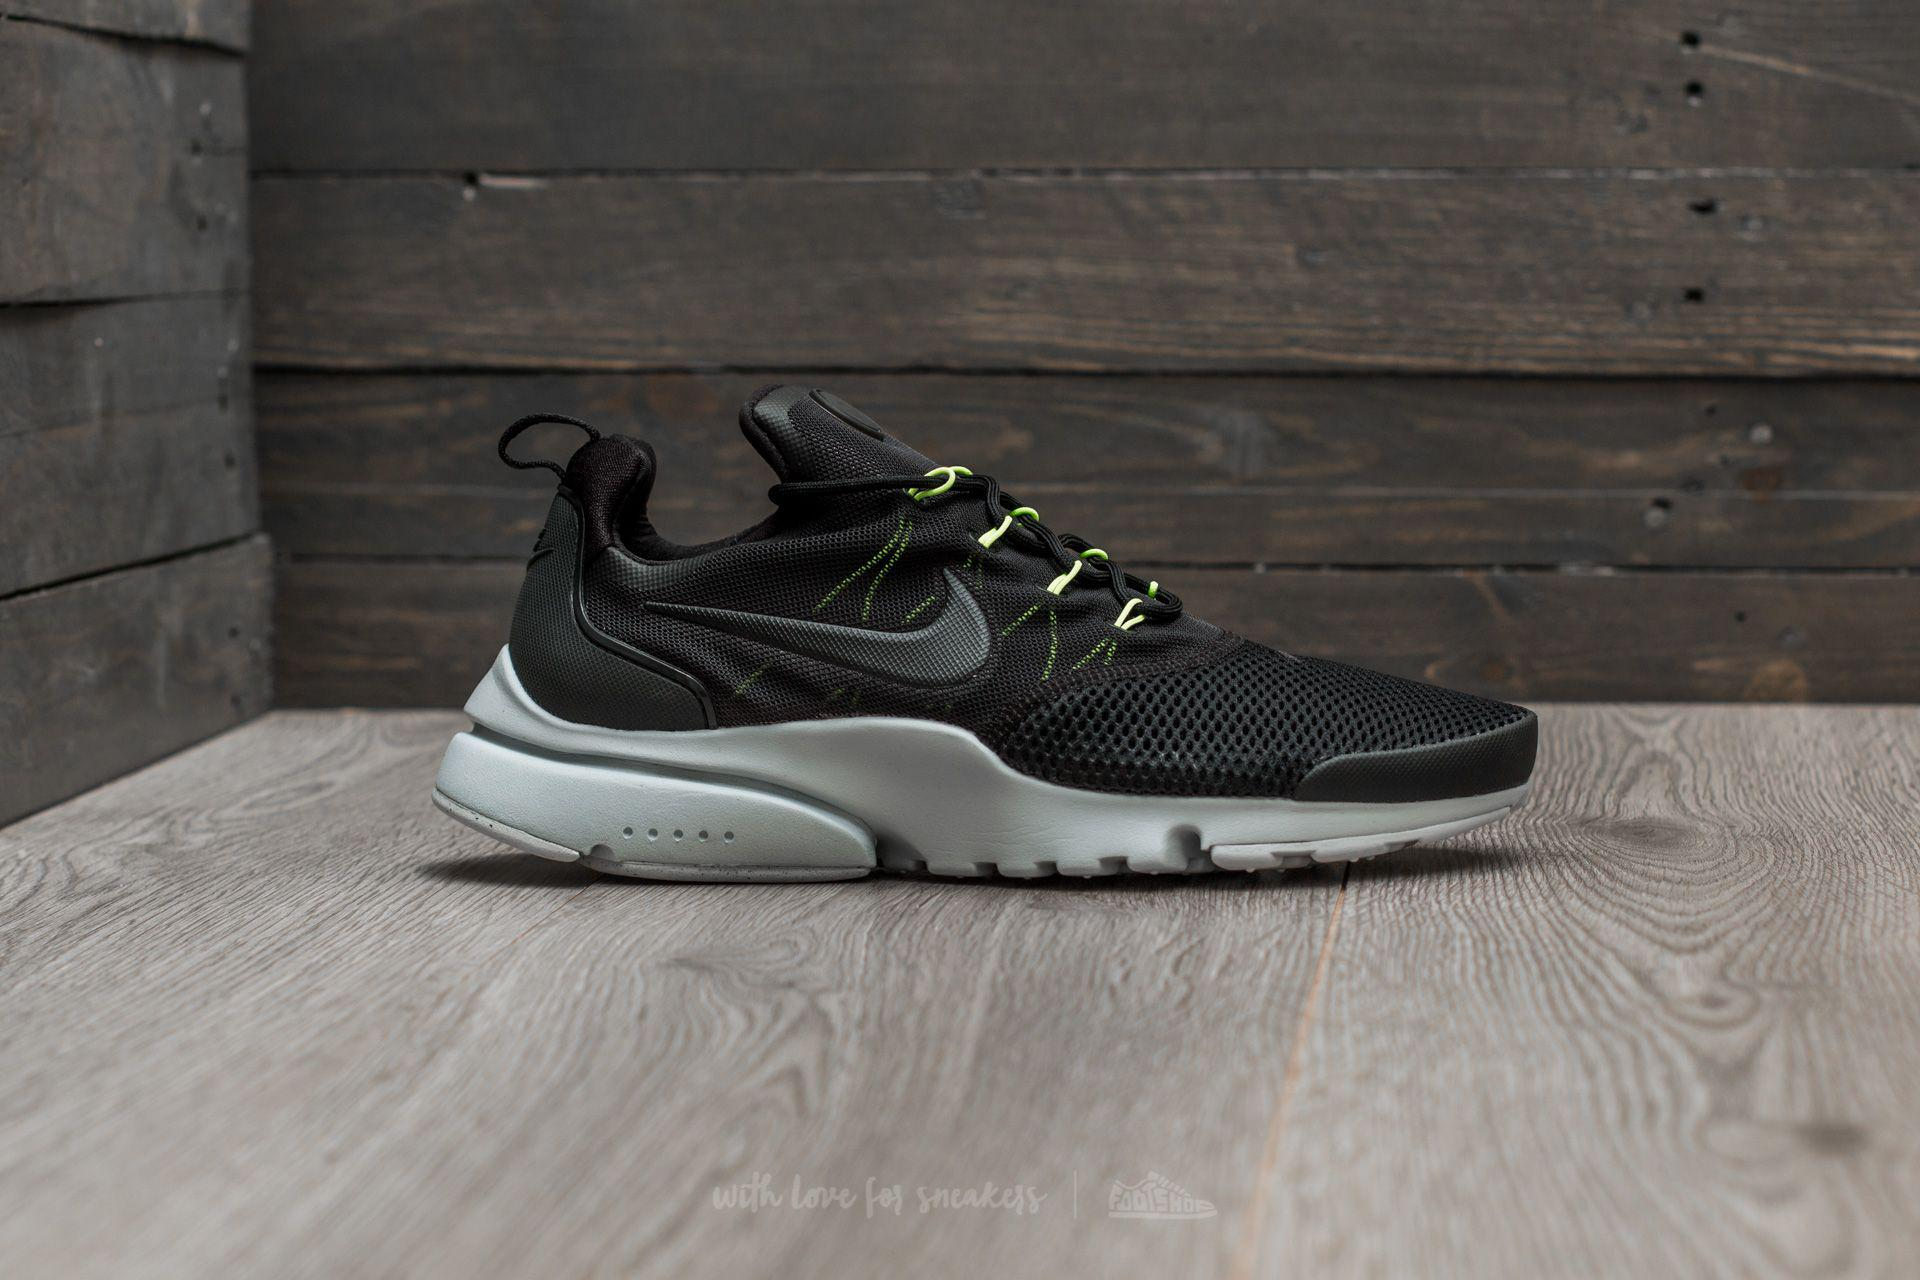 factory authentic 86039 64096 Lyst - Nike Presto Fly Black Black-volt-pure Platinum in Bla